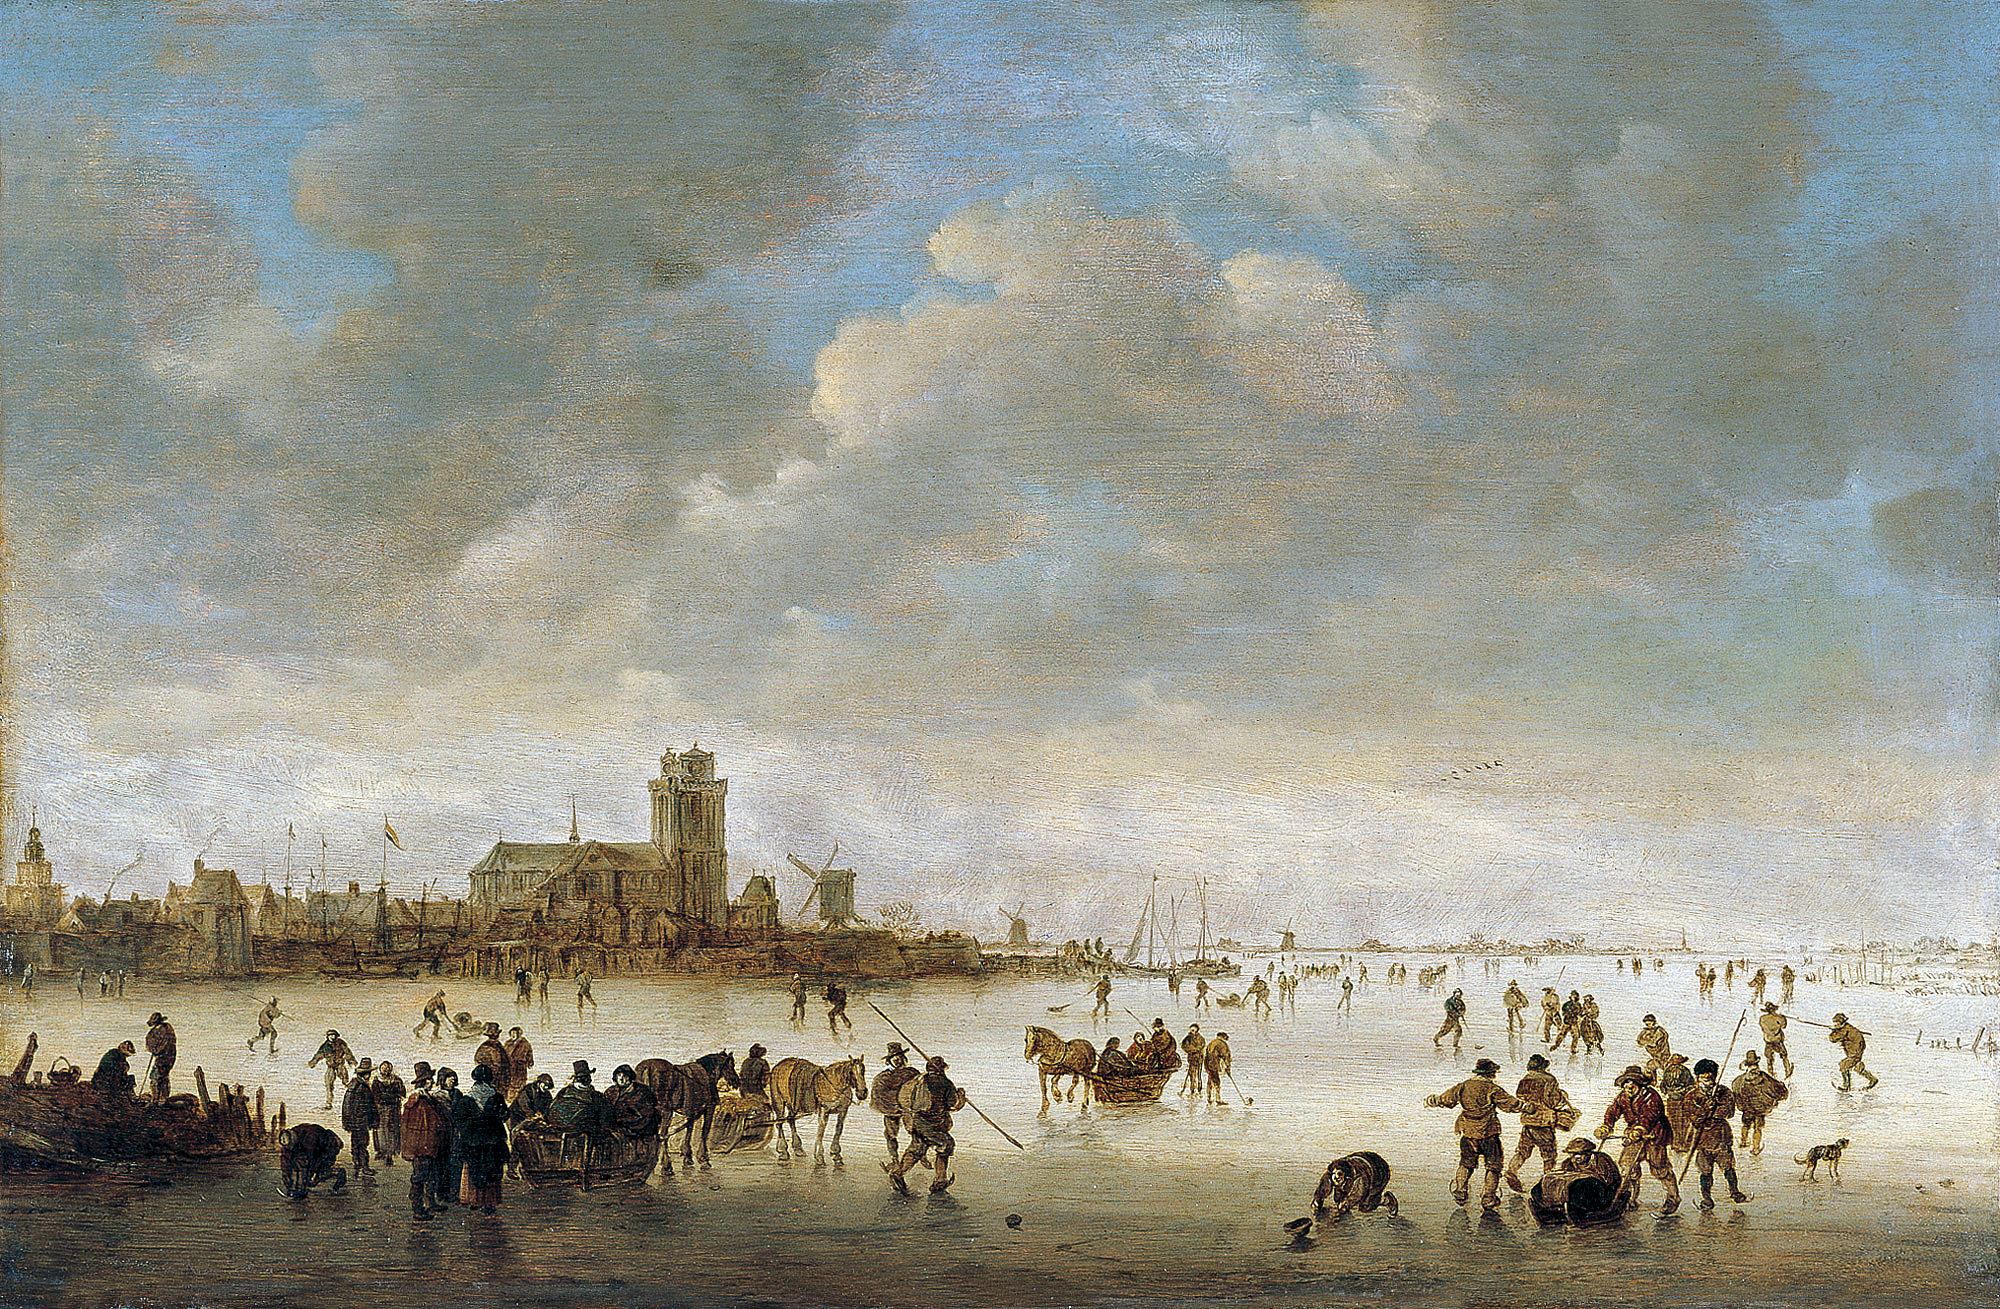 Jan van Goyen – Museo Thyssen-Bornemisza 167 (1957.7). Title: Winter Landscape with Figures on the Ice. Date: 1643. Materials: oil on panel. Dimensions: 39.6 x 60.7 cm. Nr. : 167 (1957.7). Source: http://www.museothyssen.org/en/thyssen/ficha_obra/373. I have changed the light, contrast and colors of the original photo.